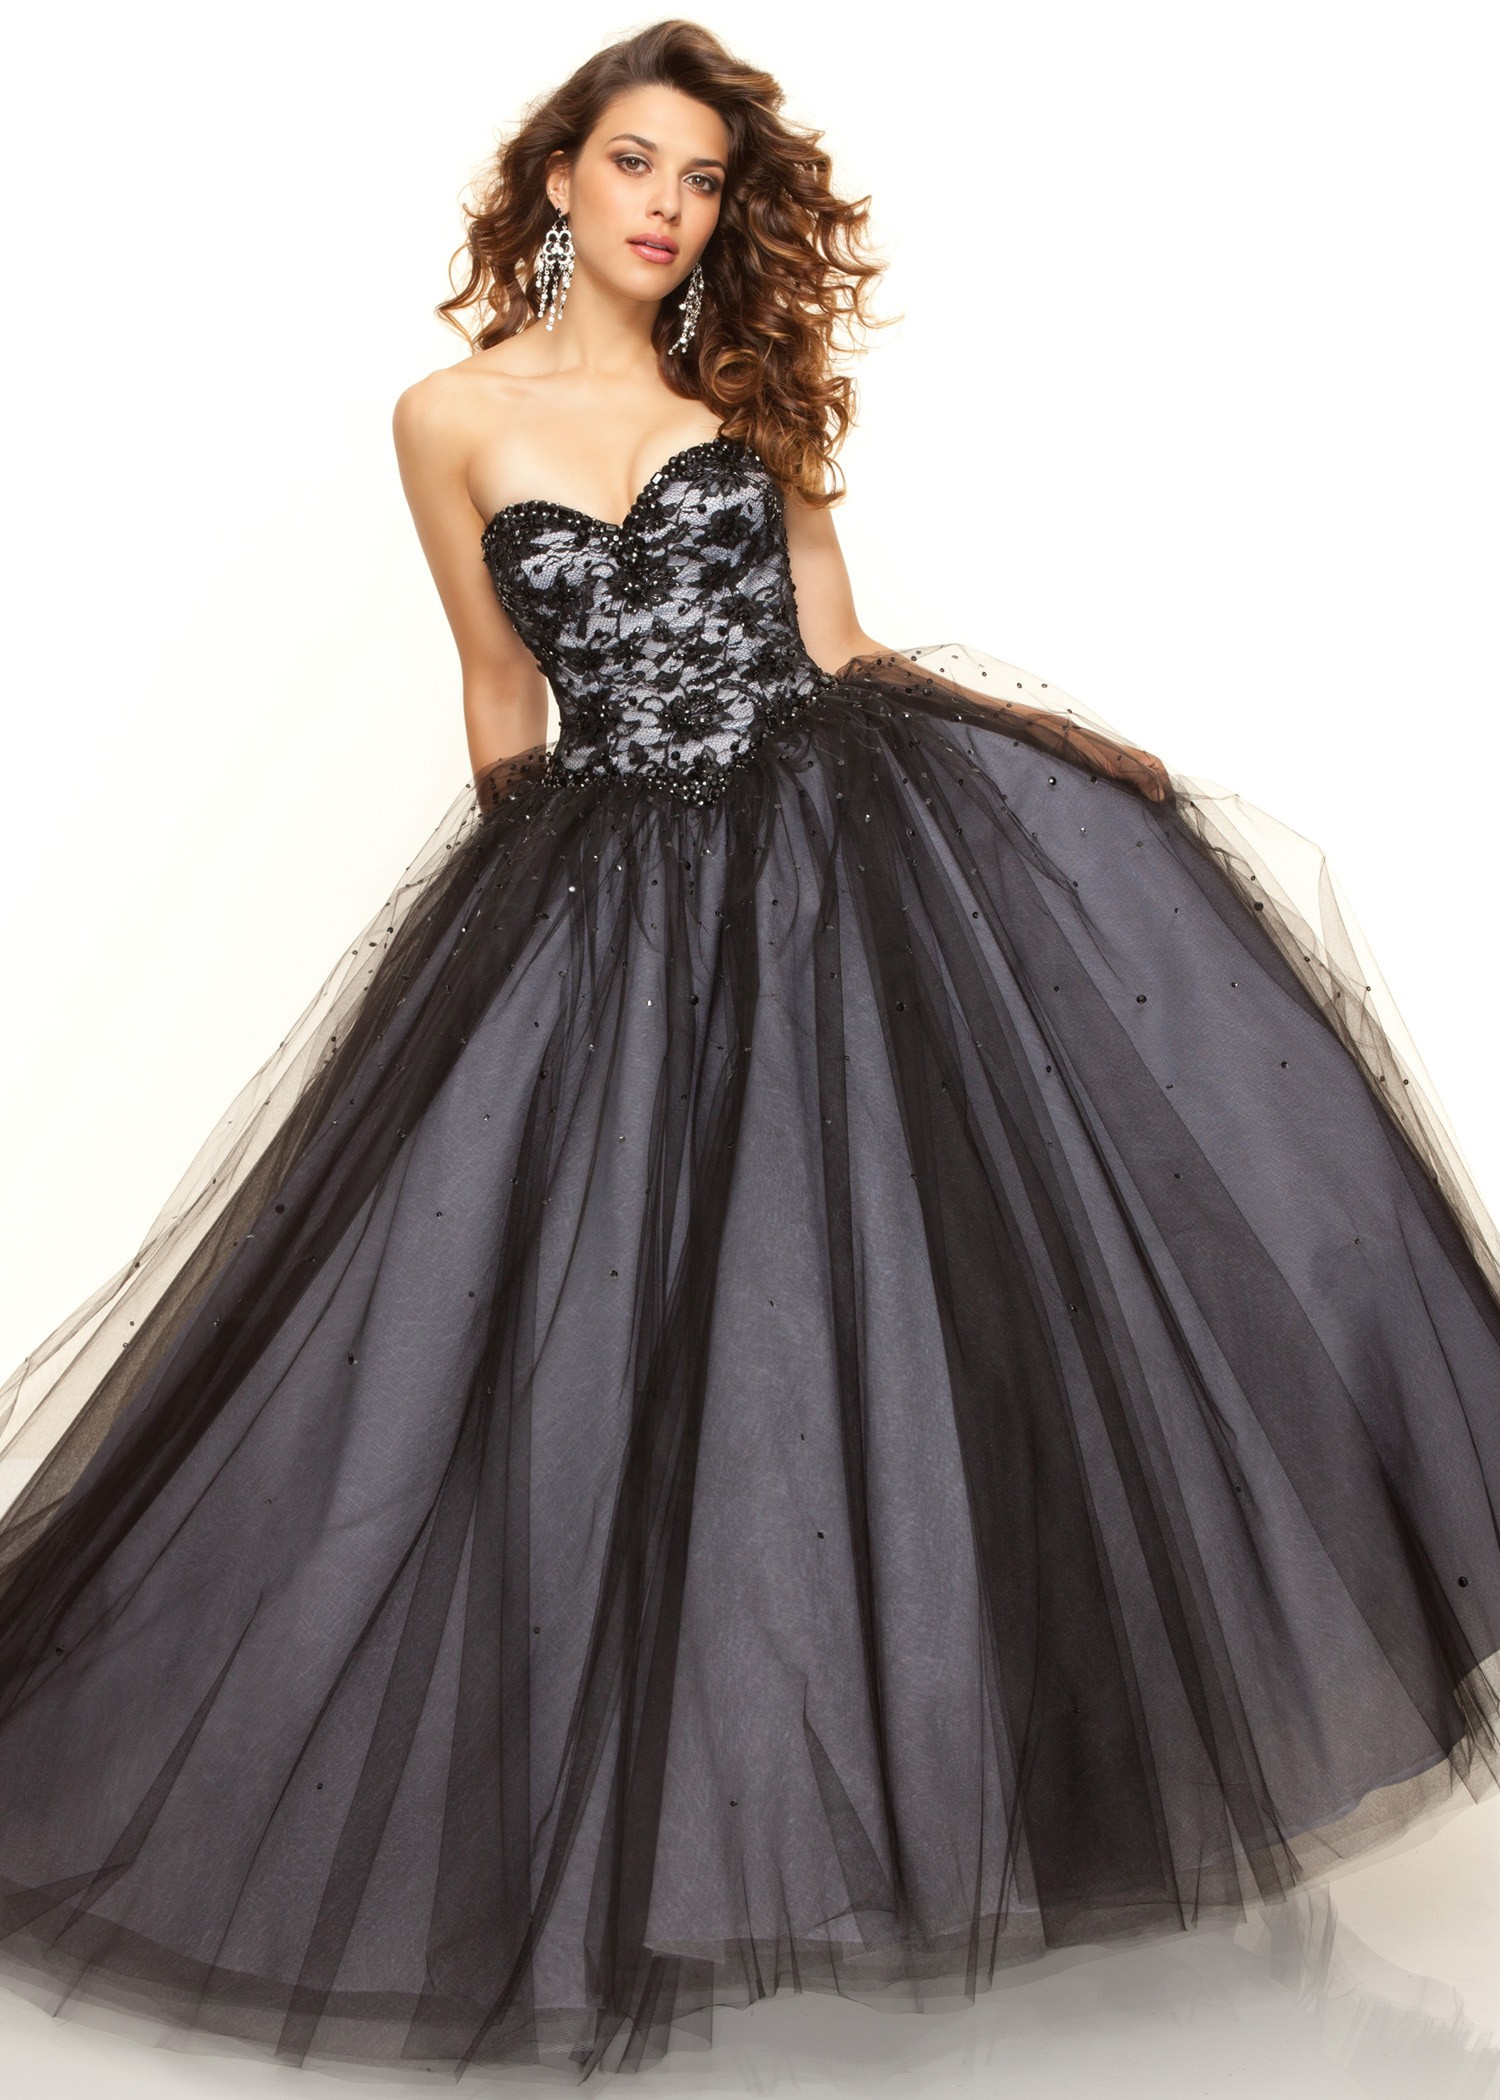 Paparazzi by Mori Lee 93033 - Beaded Black Ball Gown Dress, 2013 ...